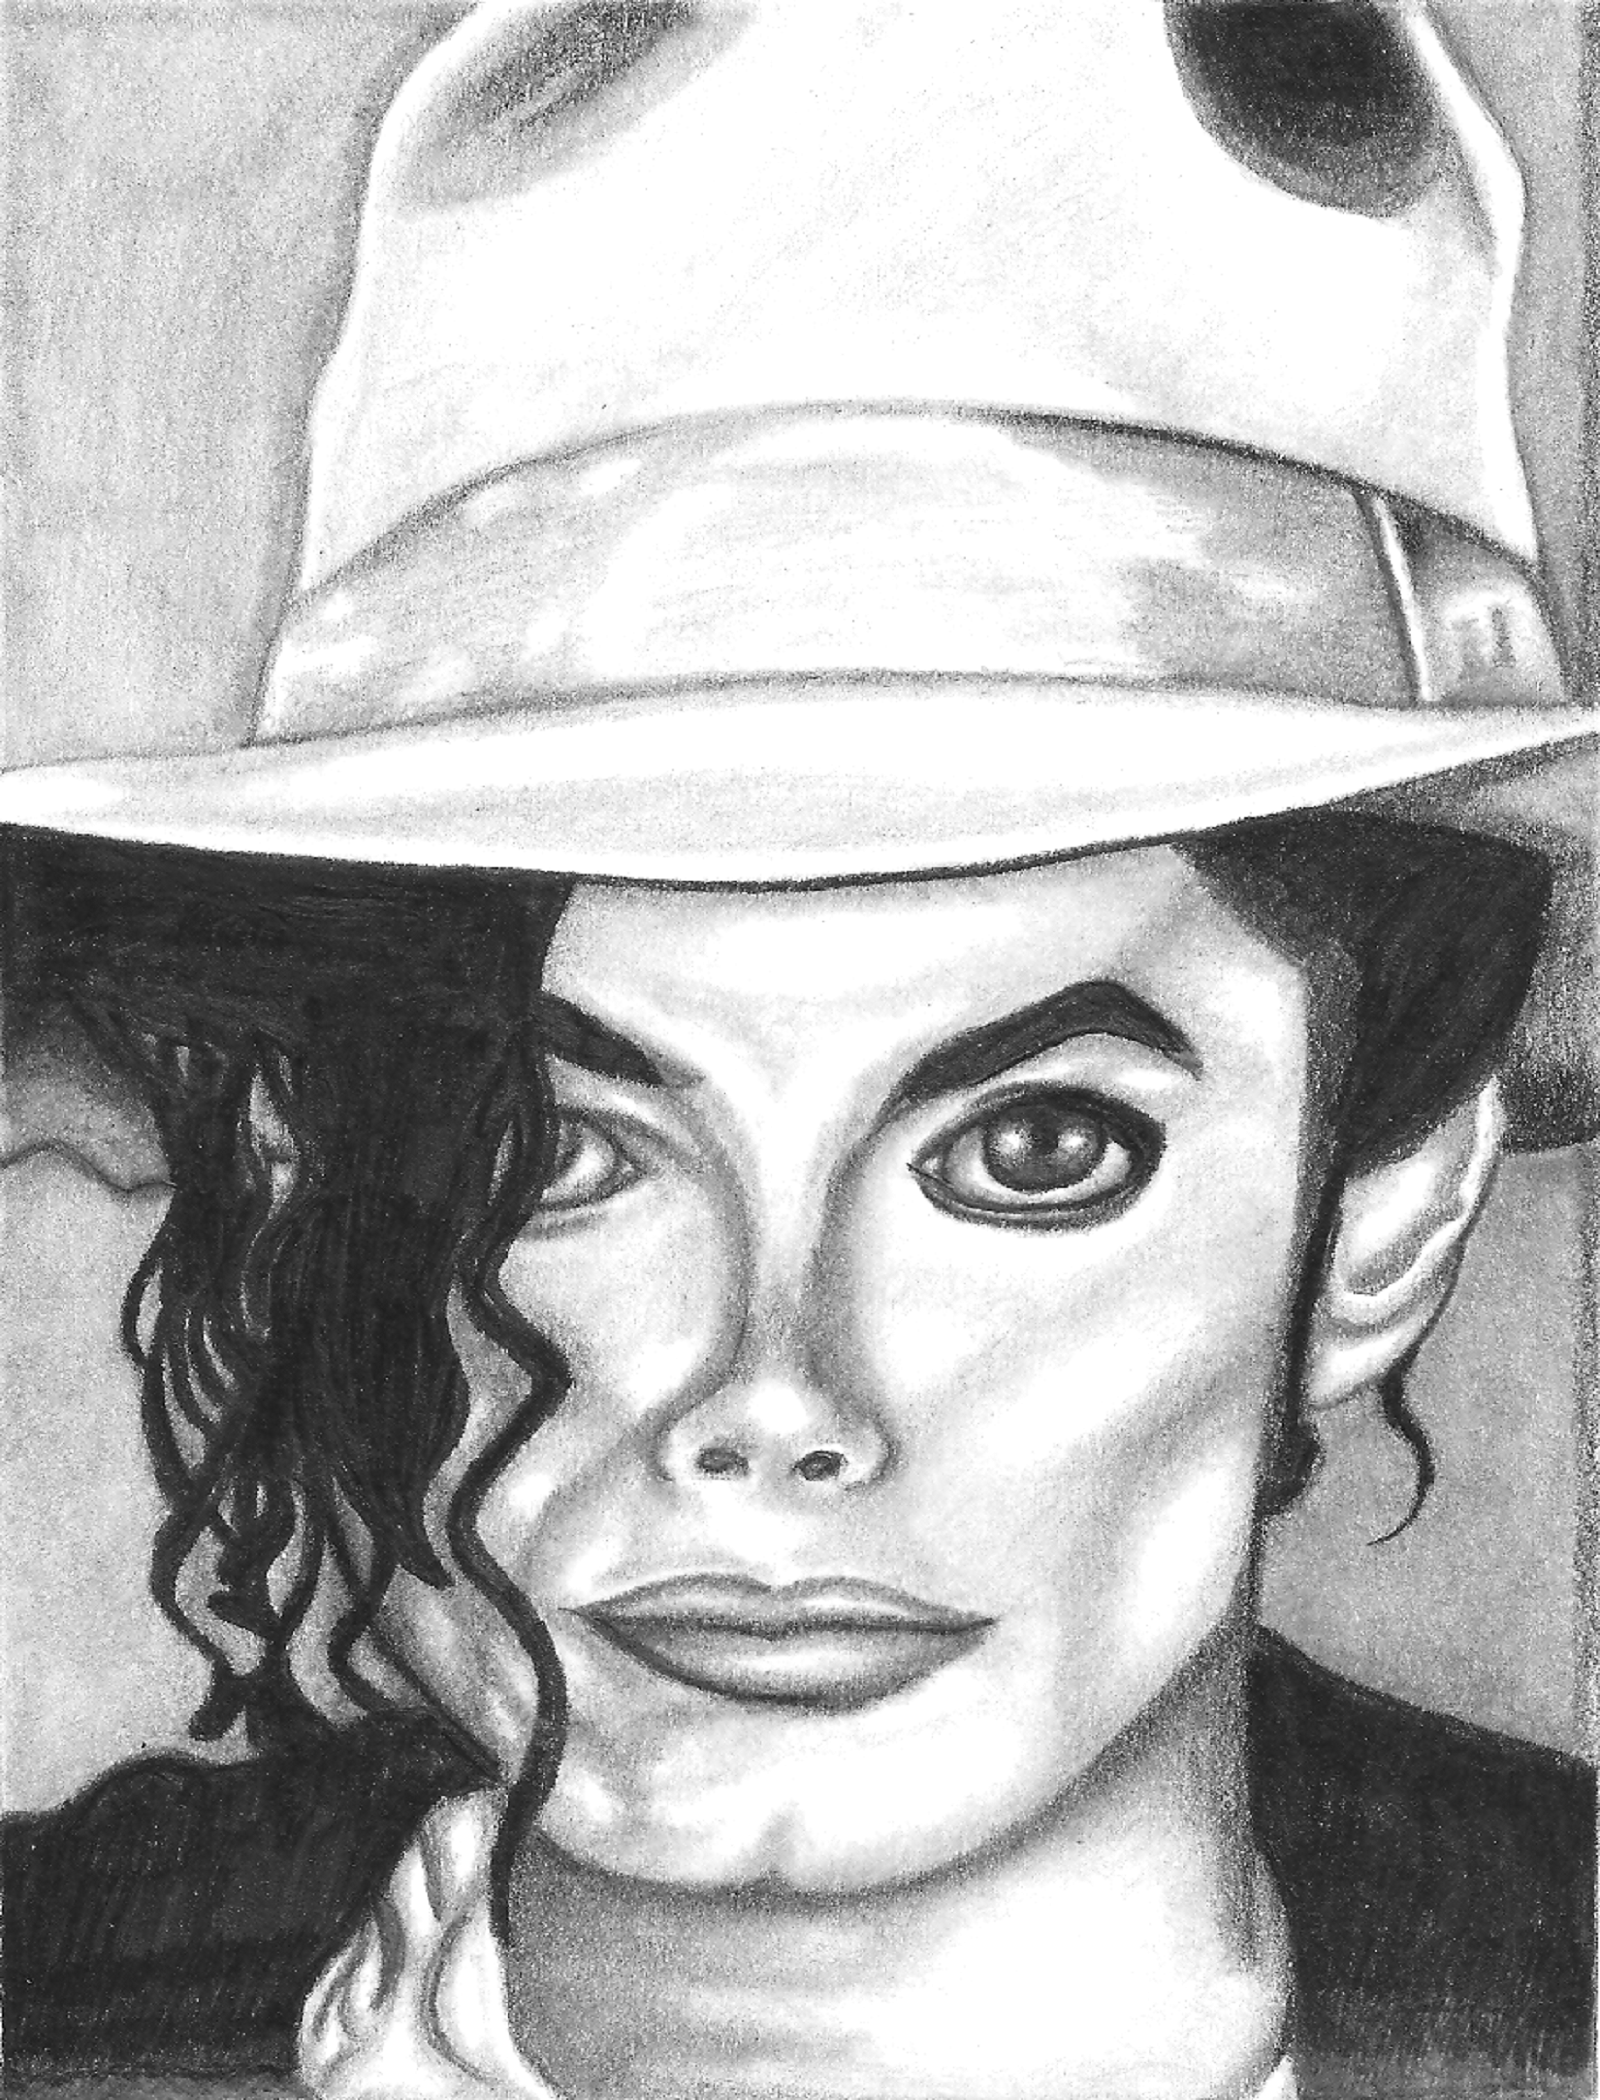 Michael Jackson Pencil Drawing By Peacekeeperj3low On DeviantArt